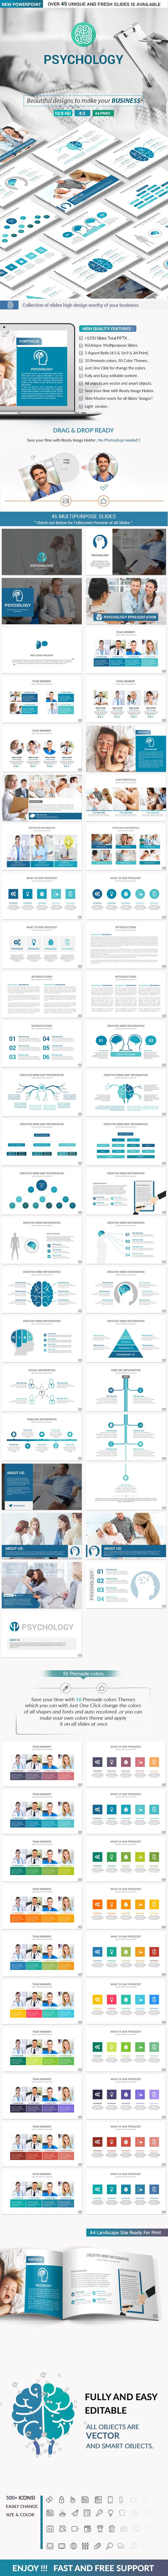 Psychology PowerPoint Presentation Template - #Creative #PowerPoint #Templates Download here:  https://graphicriver.net/item/psychology-powerpoint-presentation-template/19504210?ref=alena994